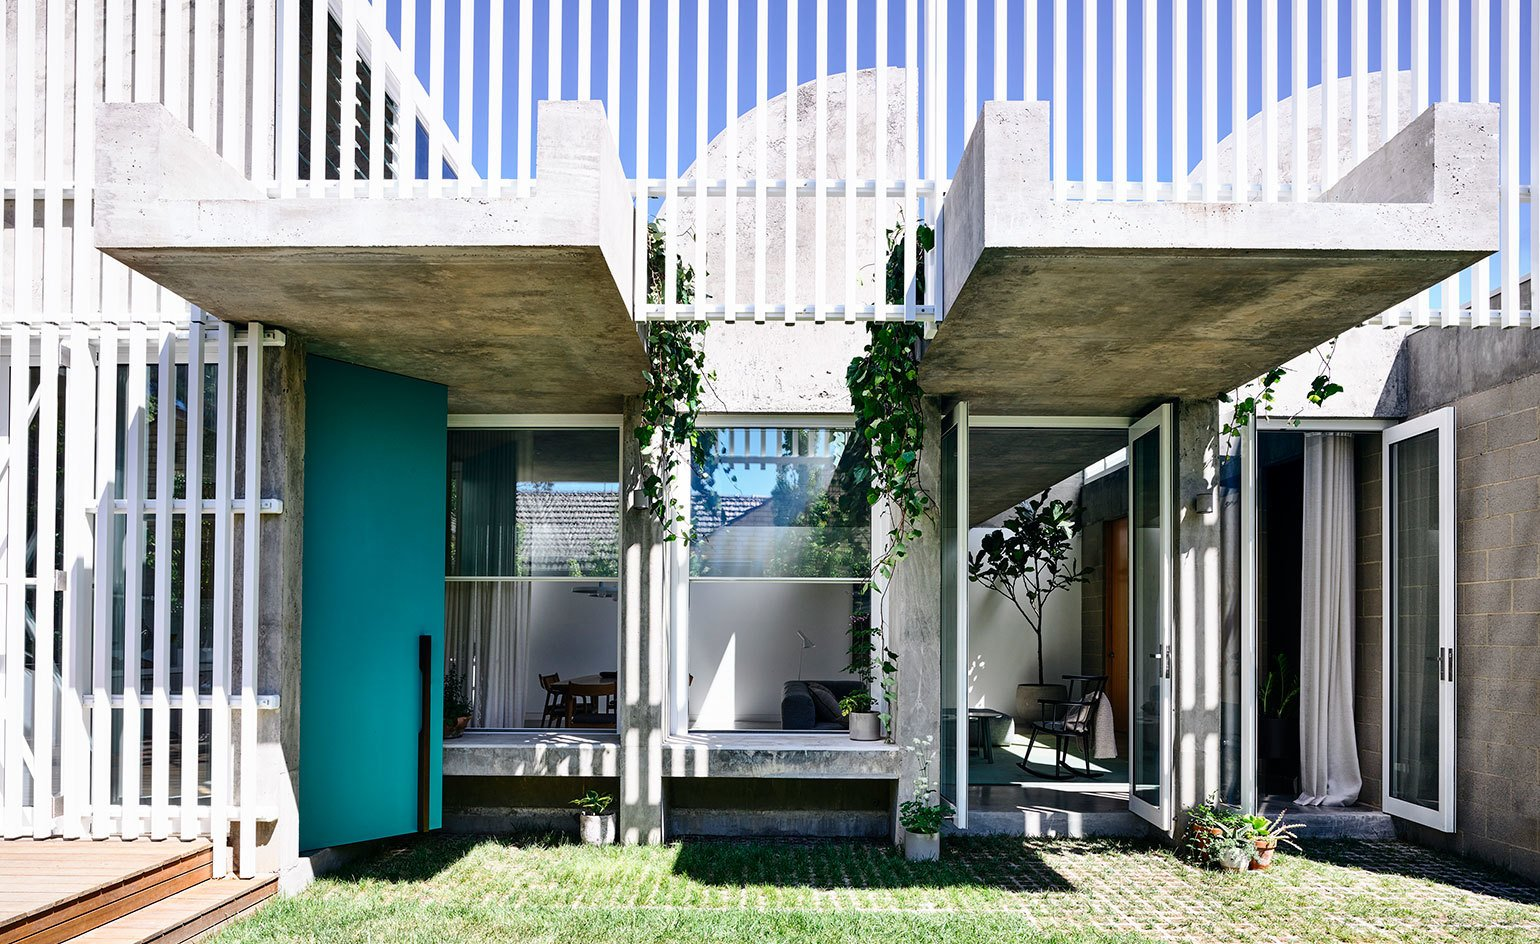 Exterior, Concrete Siding Material, and House Building Type  Photo 1 of 11 in Vaulted Skylights and Concrete Columns Connect This Melbourne Home With the Sun